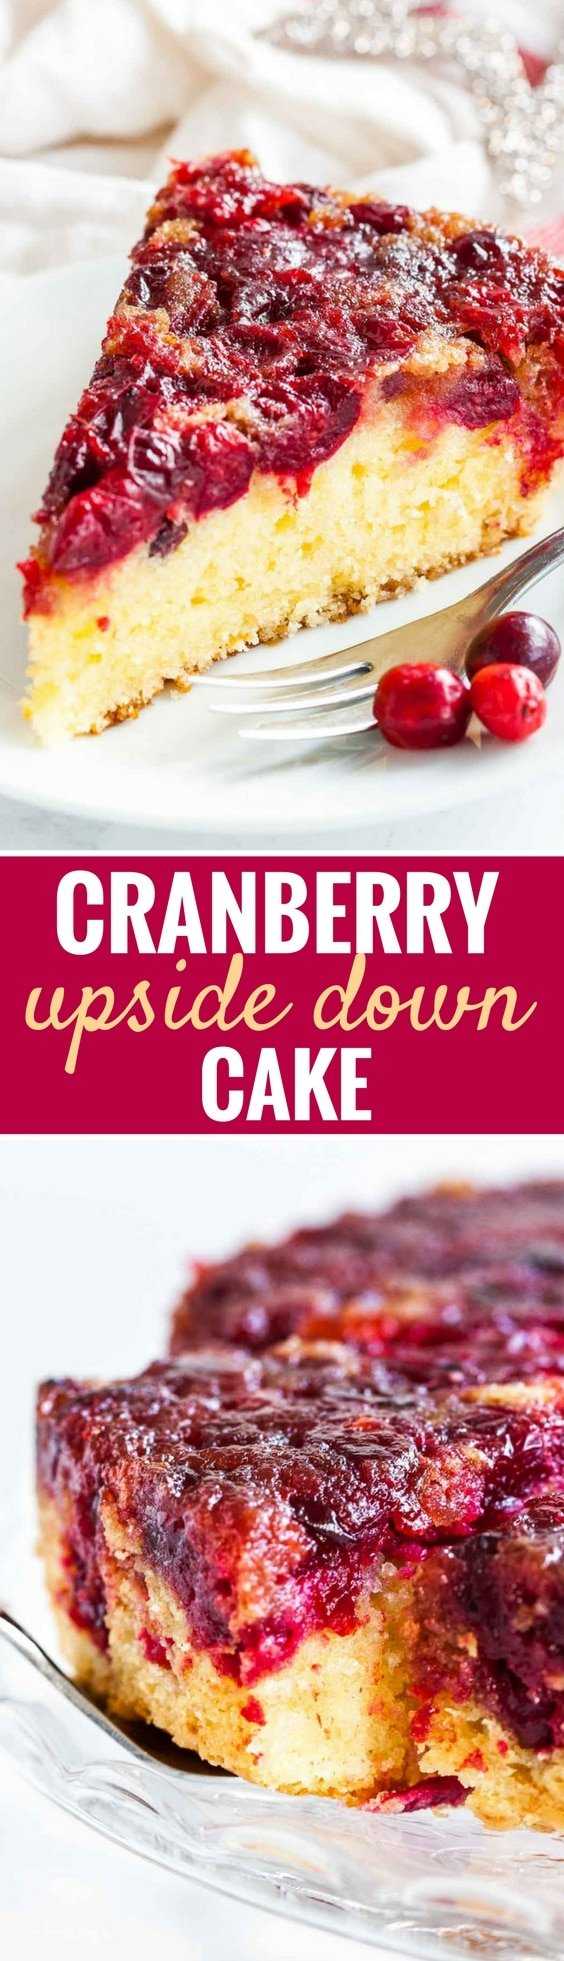 Easy Cranberry Upside Down Cake has a perfectly balanced flavor and looks so festive and vibrant. A gorgeous coffee cake made with fresh cranberries that's perfect for Christmas and Thanksgiving dessert and can be made ahead! #ThanksgivingDessert #ChristmasDessert #UpsidedownCake #Cranberries #CranberryCake